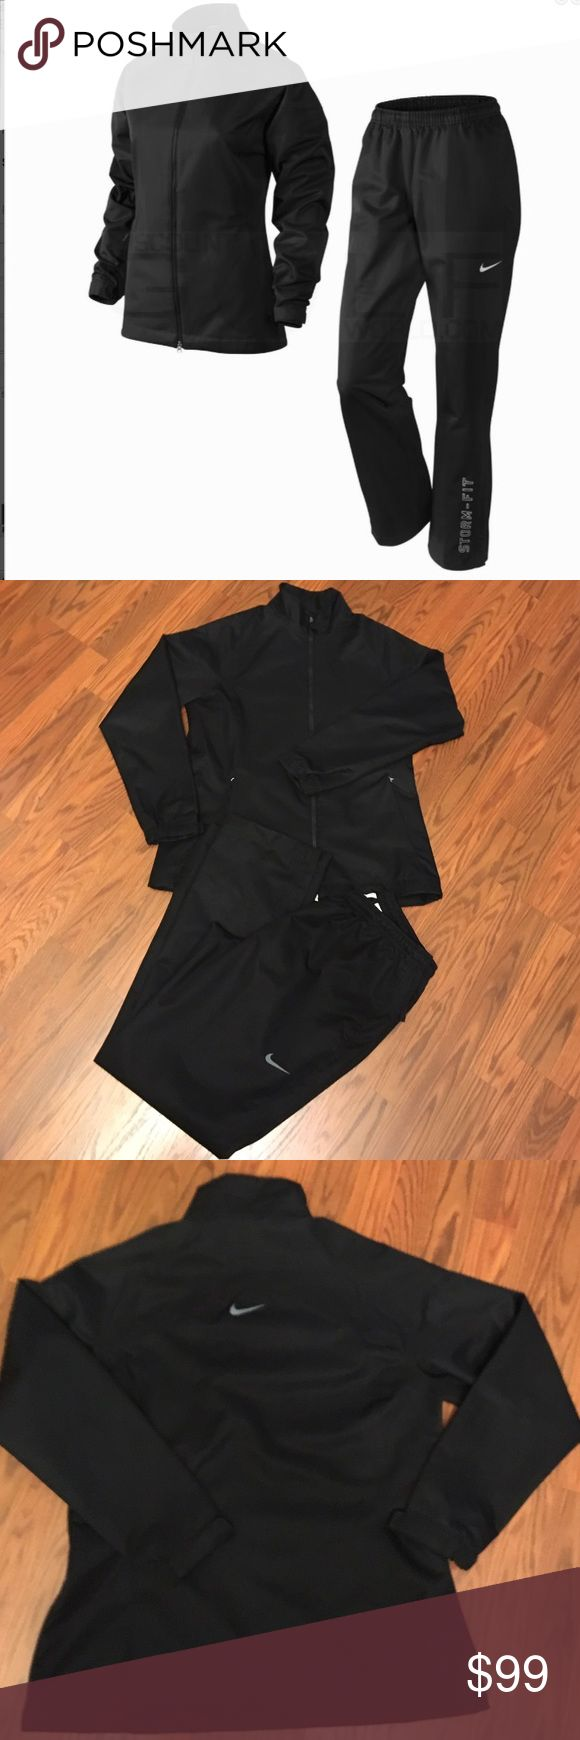 """NWOT Nike Golf Women's Storm-Fit Rain Suit NEW! NikeGolf Rain Suit/Tracksuit, Black with gray/silver detail, seam-sealed, waterproof, windproof, lined with mesh for enhanced breathability, Body: 100% polyester plain twill with laminate storm-FIT material, Lining: 100% polyester warp knit, Laminate polyurethane on back, 32"""" inseam, Elastic drawstring waist, Full zip jacket/2 zip pockets/velcro fasteners at cuffs/Stand-up collar, back pant zip pocket, 13"""" zip with velcro bottoms, size large…"""